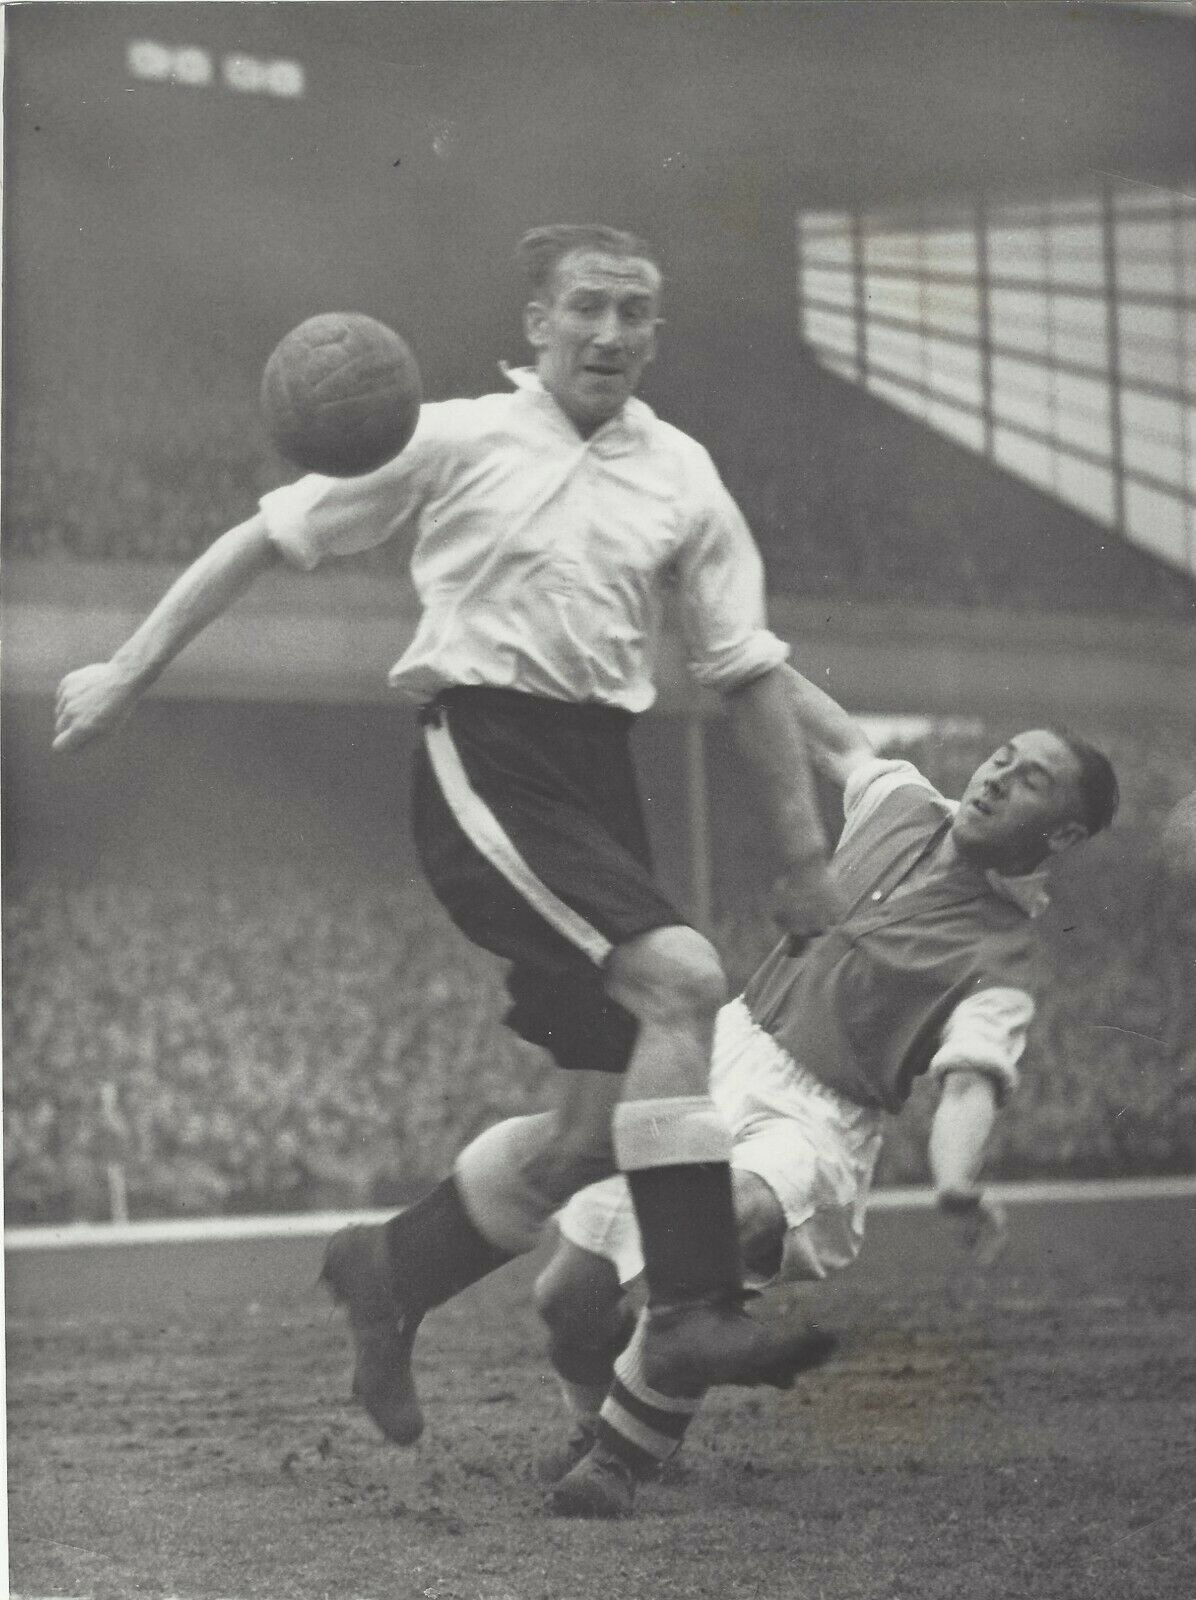 Arsenal 0 Brentford 2 In April 1938 At Highbury A 51 000 Crowd See Arsenal Lost At Home To London Rivals Brentford In Division 1 Brentford Football 2 In